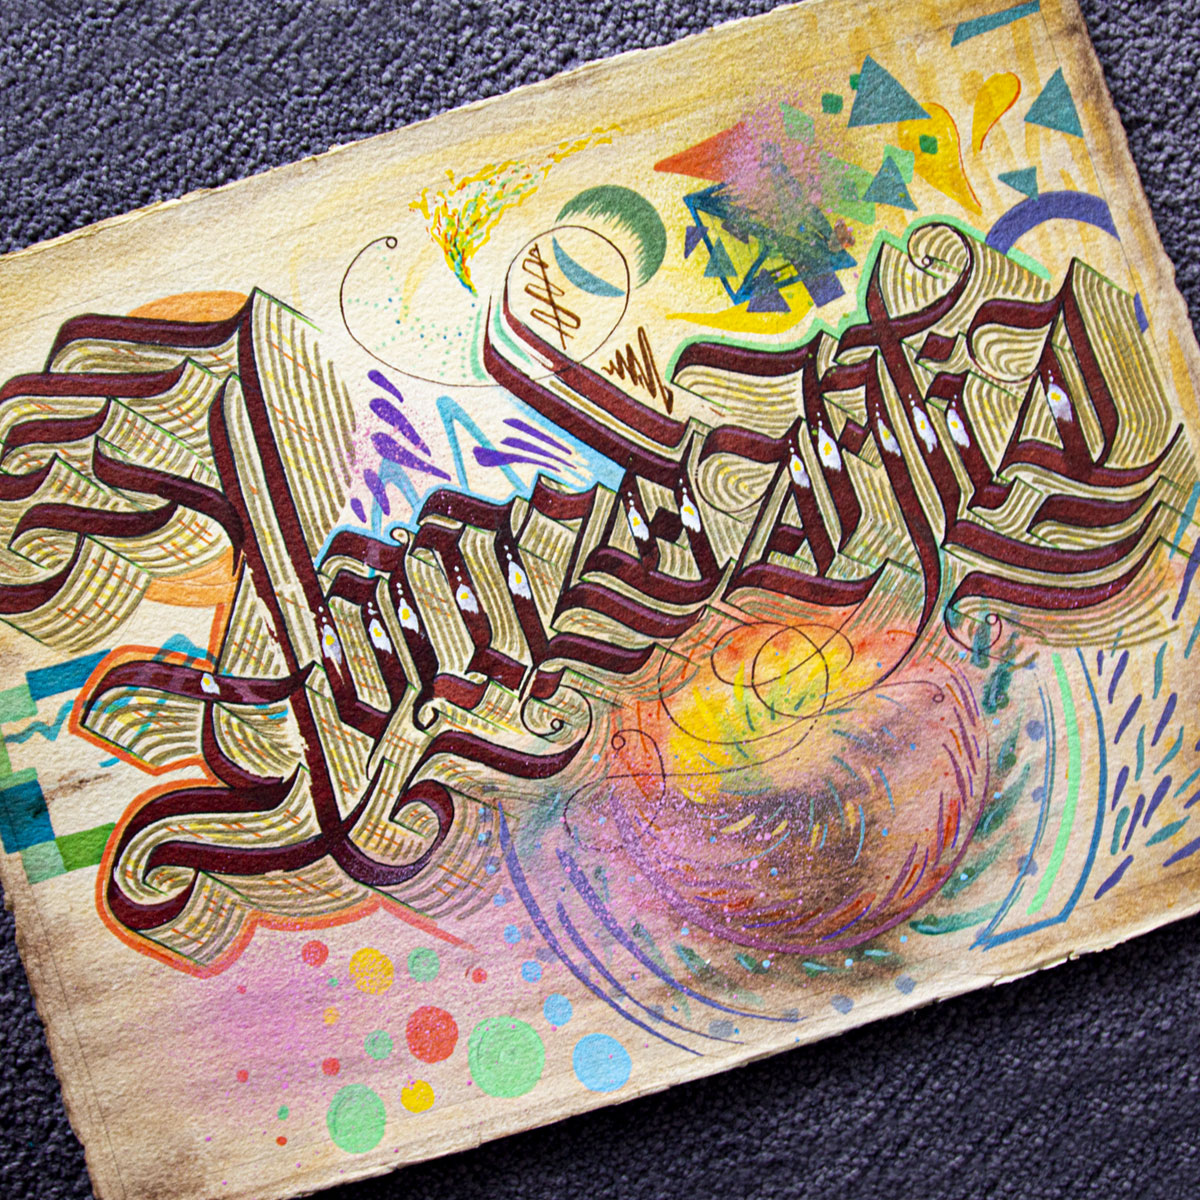 We as people always seem to forget that the universe is abundant in all its magnificence. A-B-U-N-D-A-N-T-I-A  #BlvckLama #calligraphy #graffart #calligraffiti #lettering #handlettering #urbanart #streetstyle #blackletter #calligraphy_art #artpic.twitter.com/3KvJ4suOJK